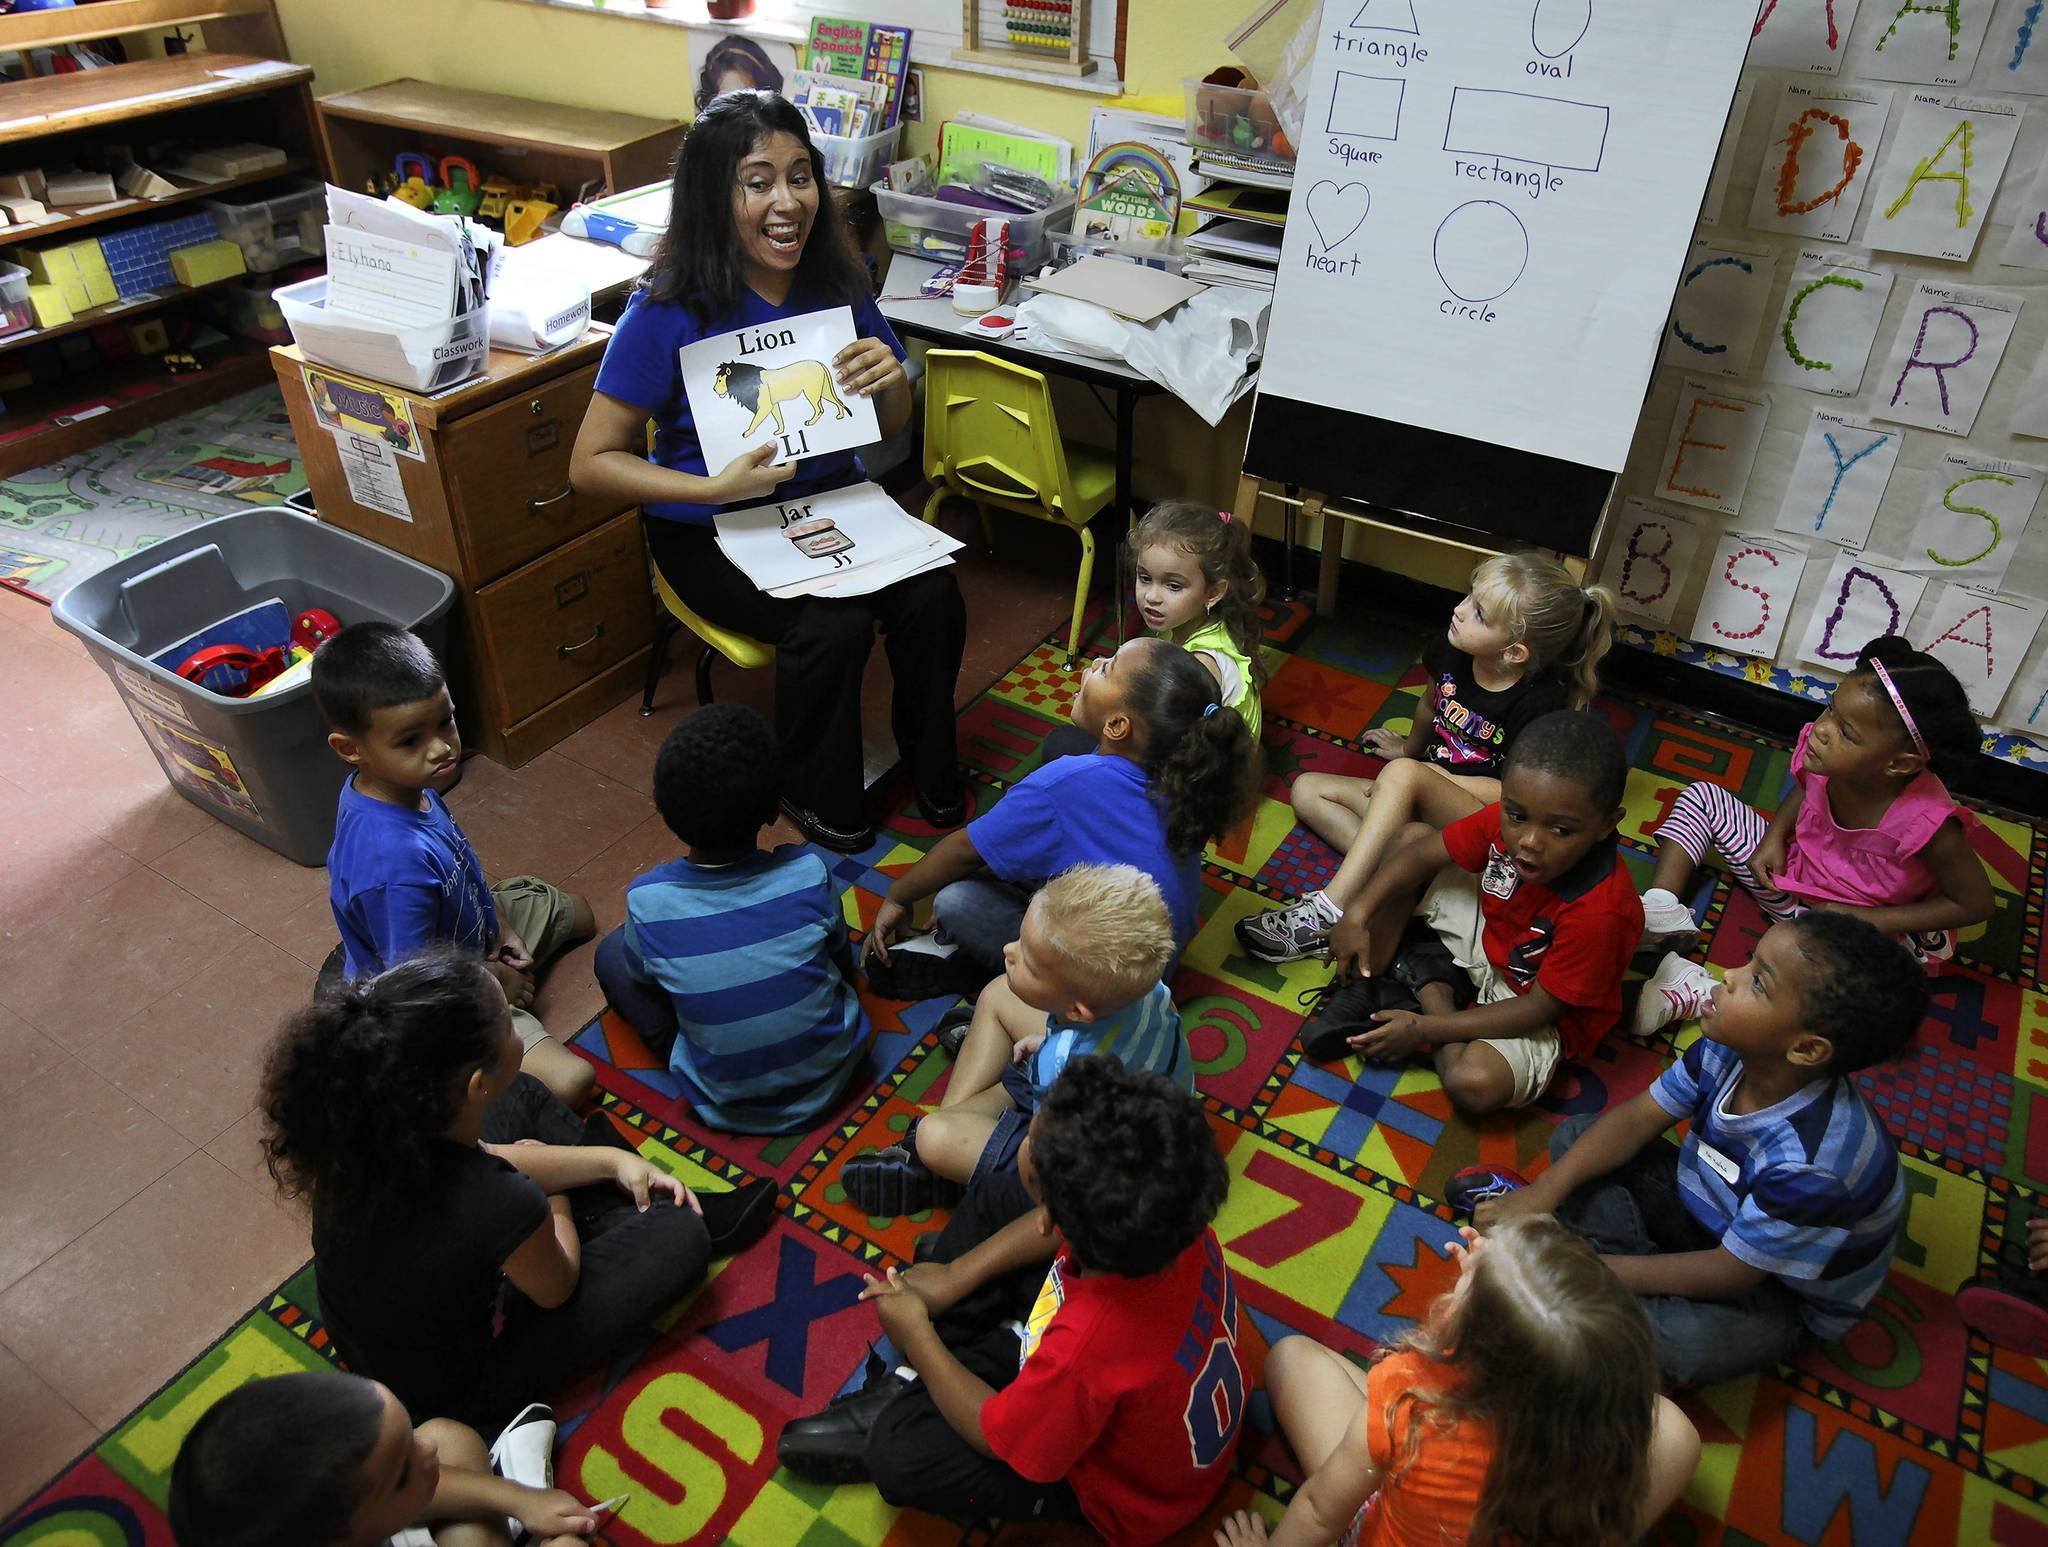 VPK teacher Leyla Villagran leads an exercise with her students at Top Kids Academy in Orlando on August 29, 2012.